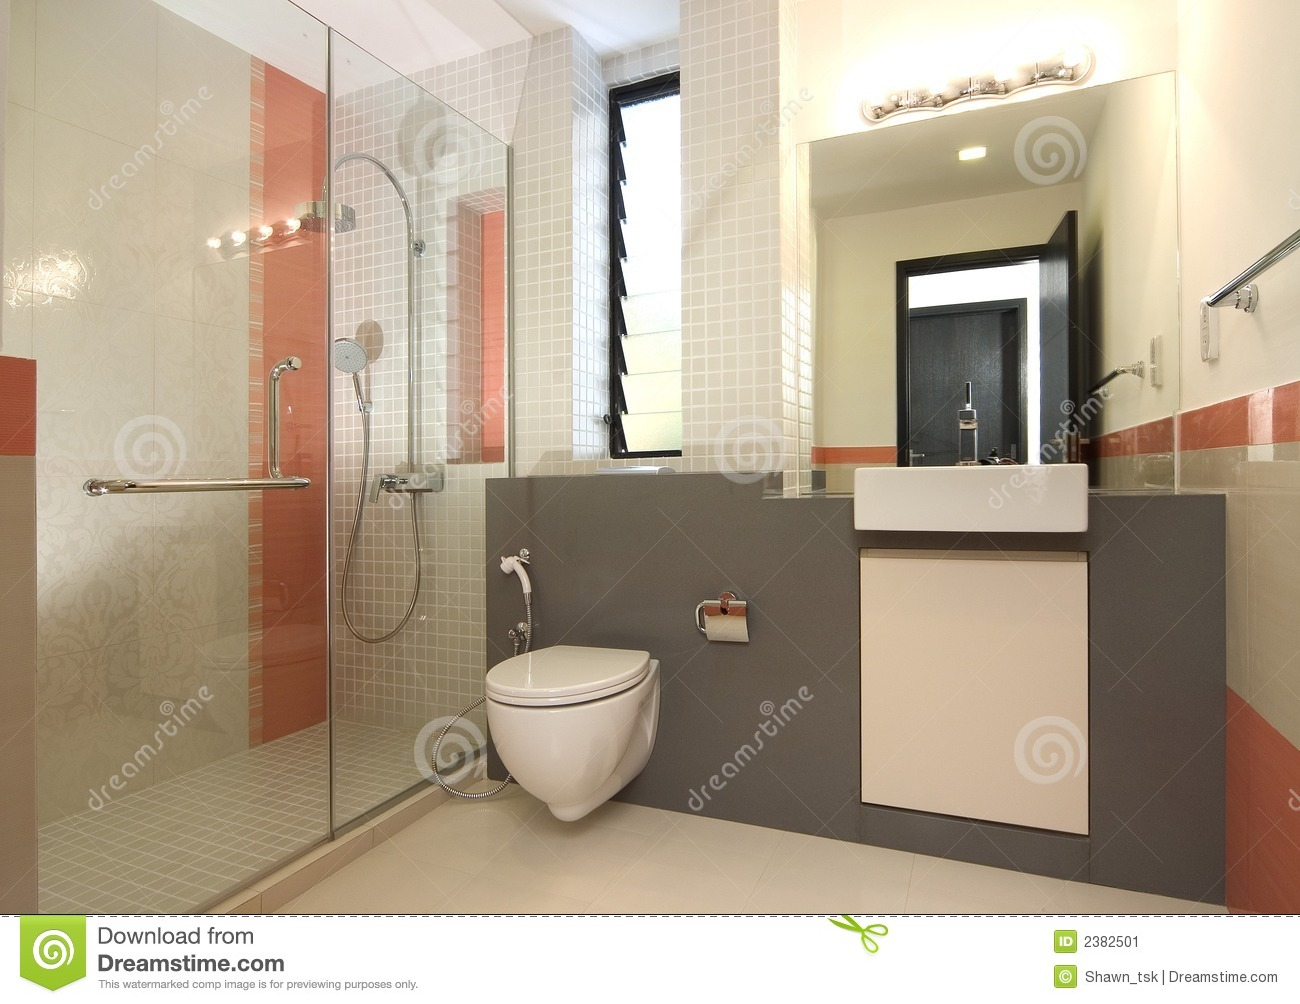 Interior design bathroom stock image image of light for Small toilet interior design